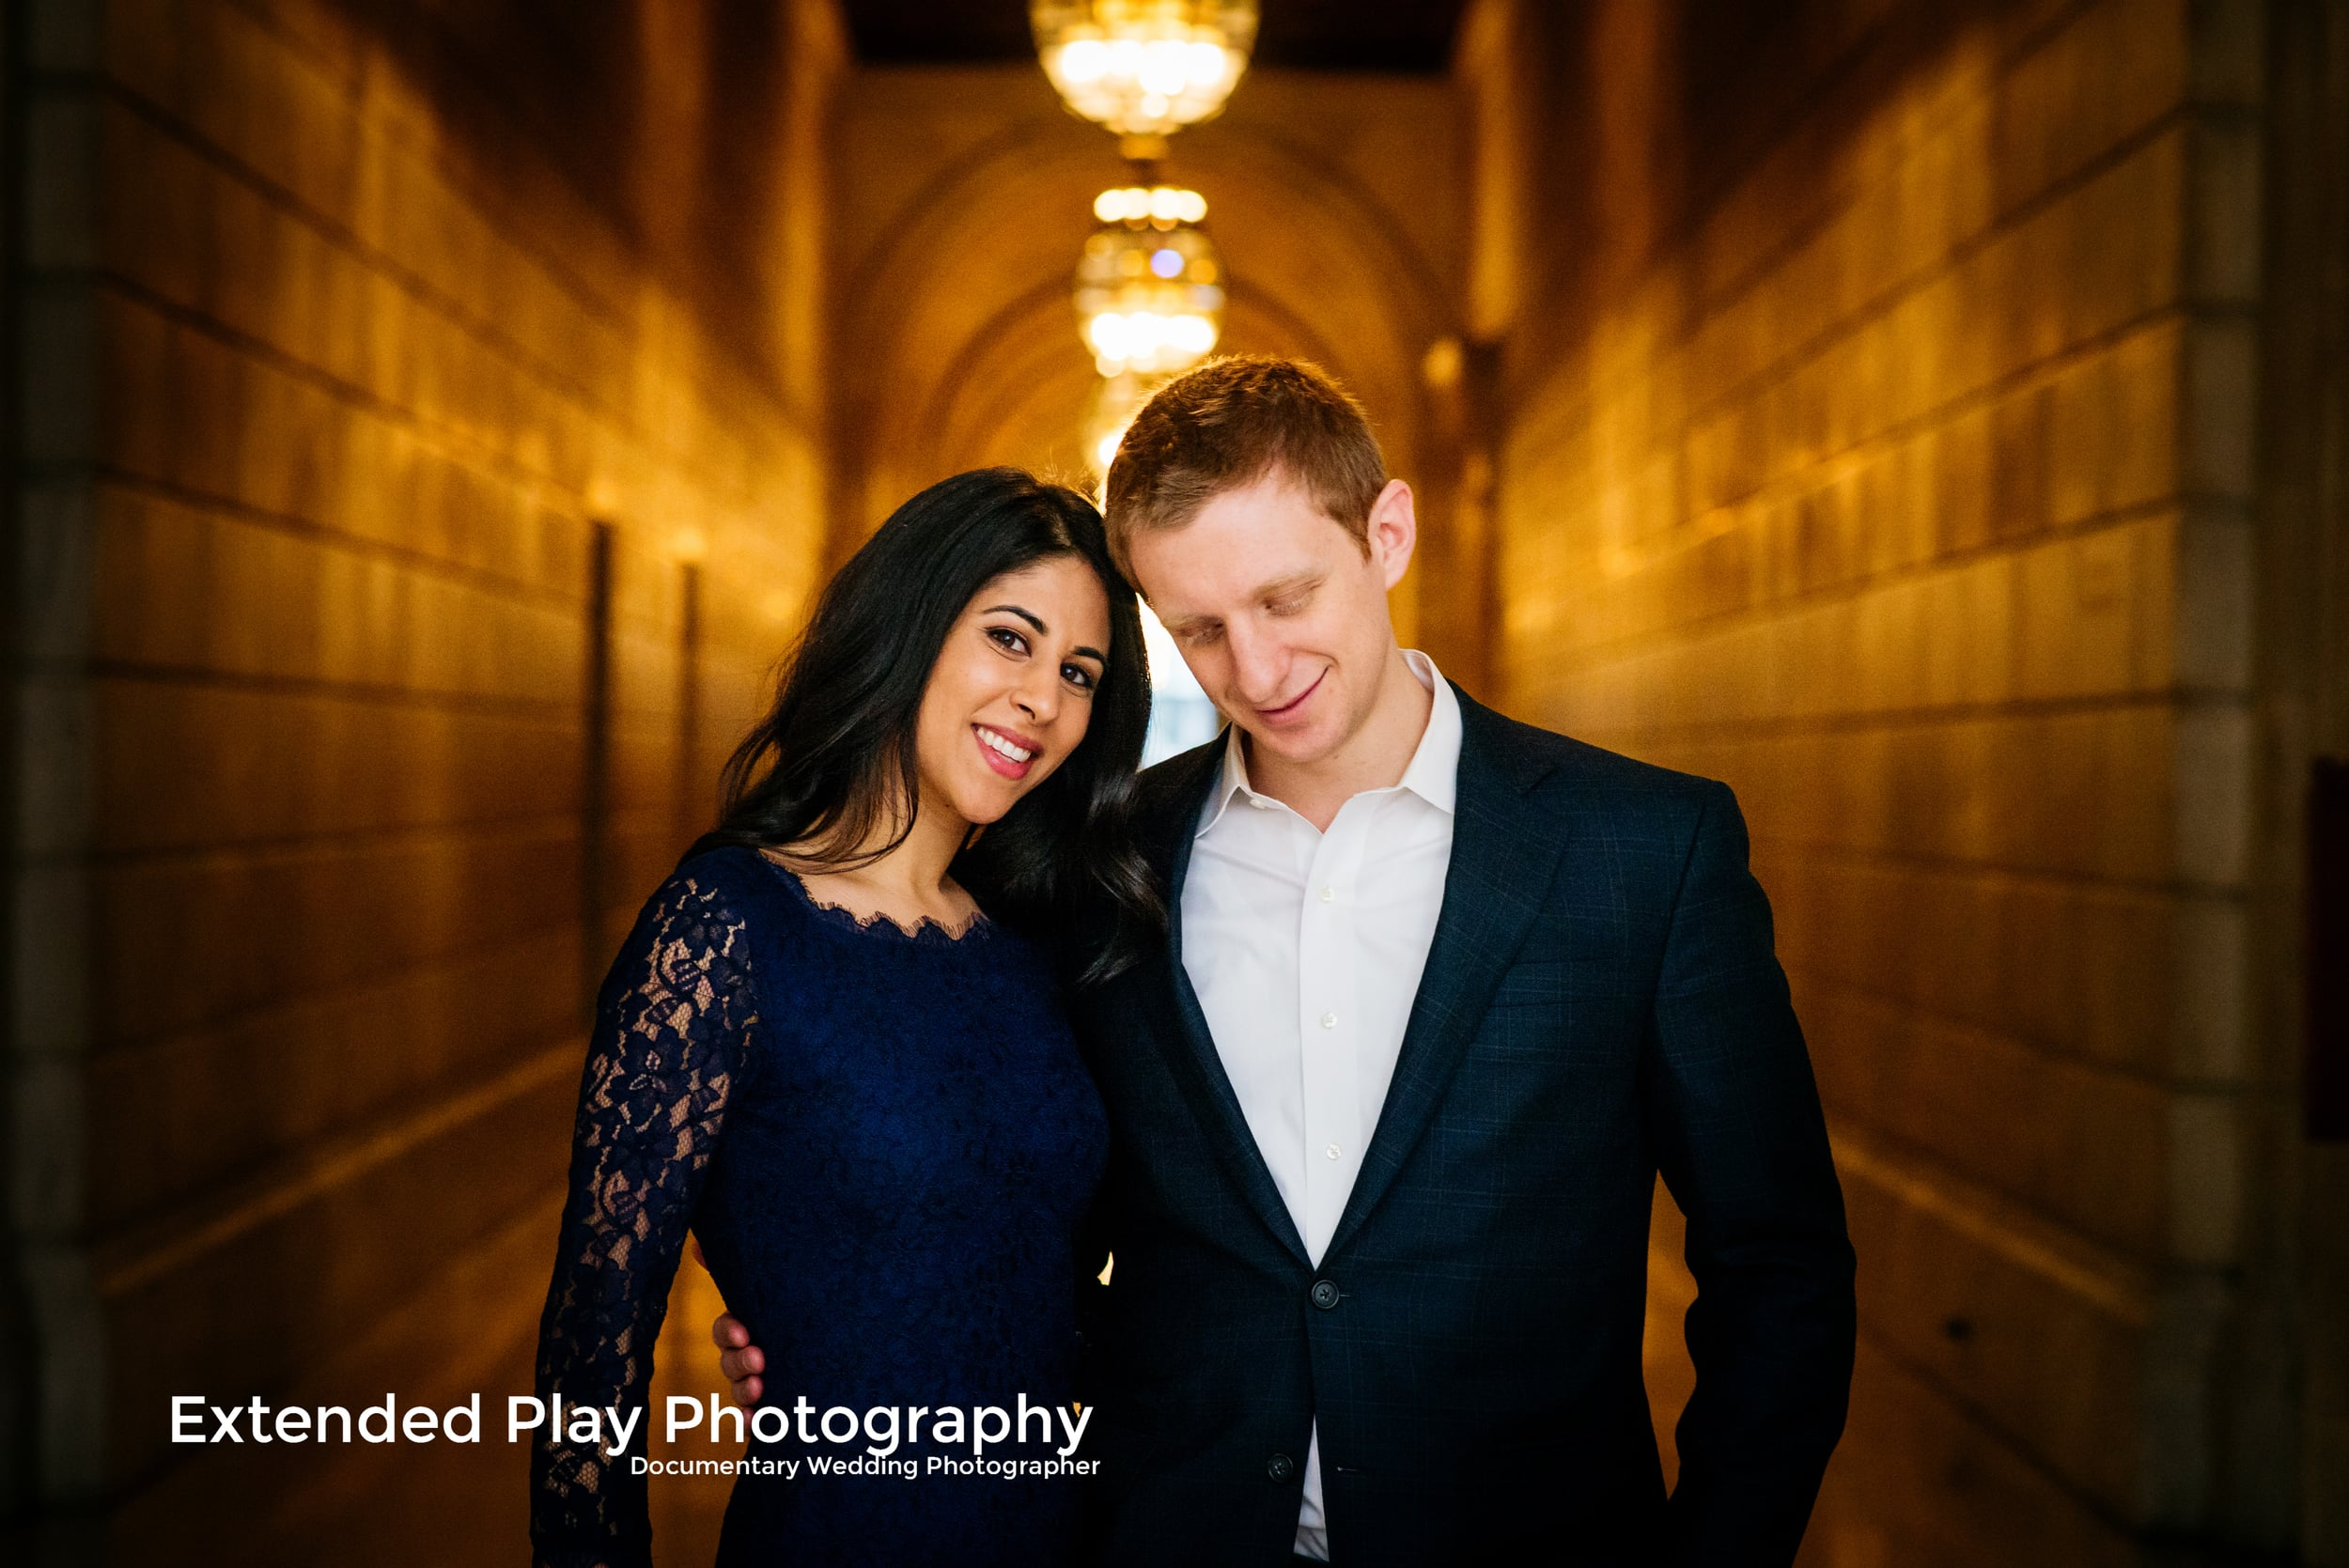 Extended Play Photography New York City Engagement-4.jpg